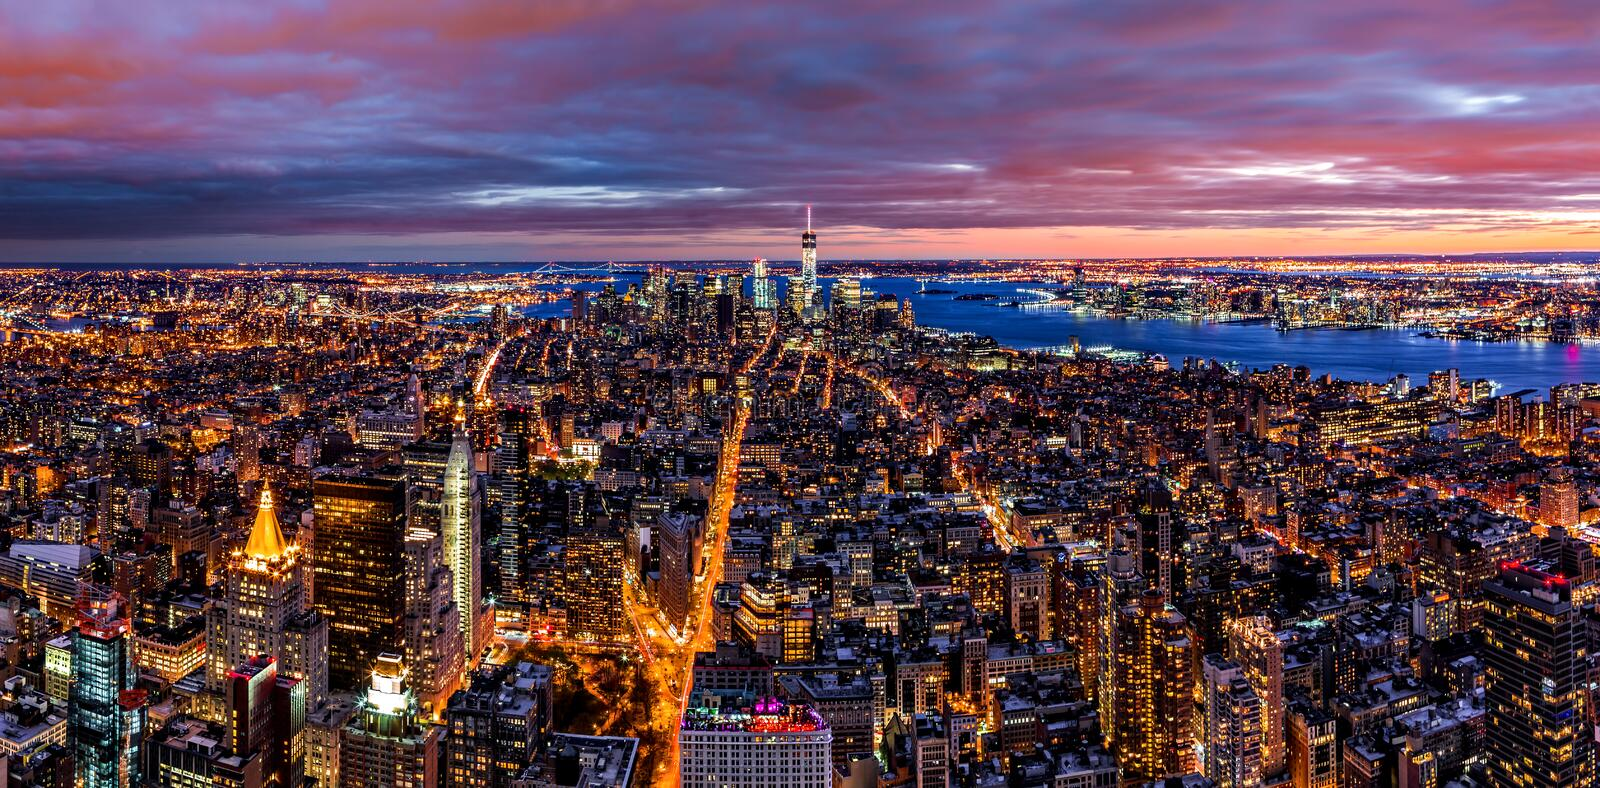 Flyg- panorama av New York arkivfoto